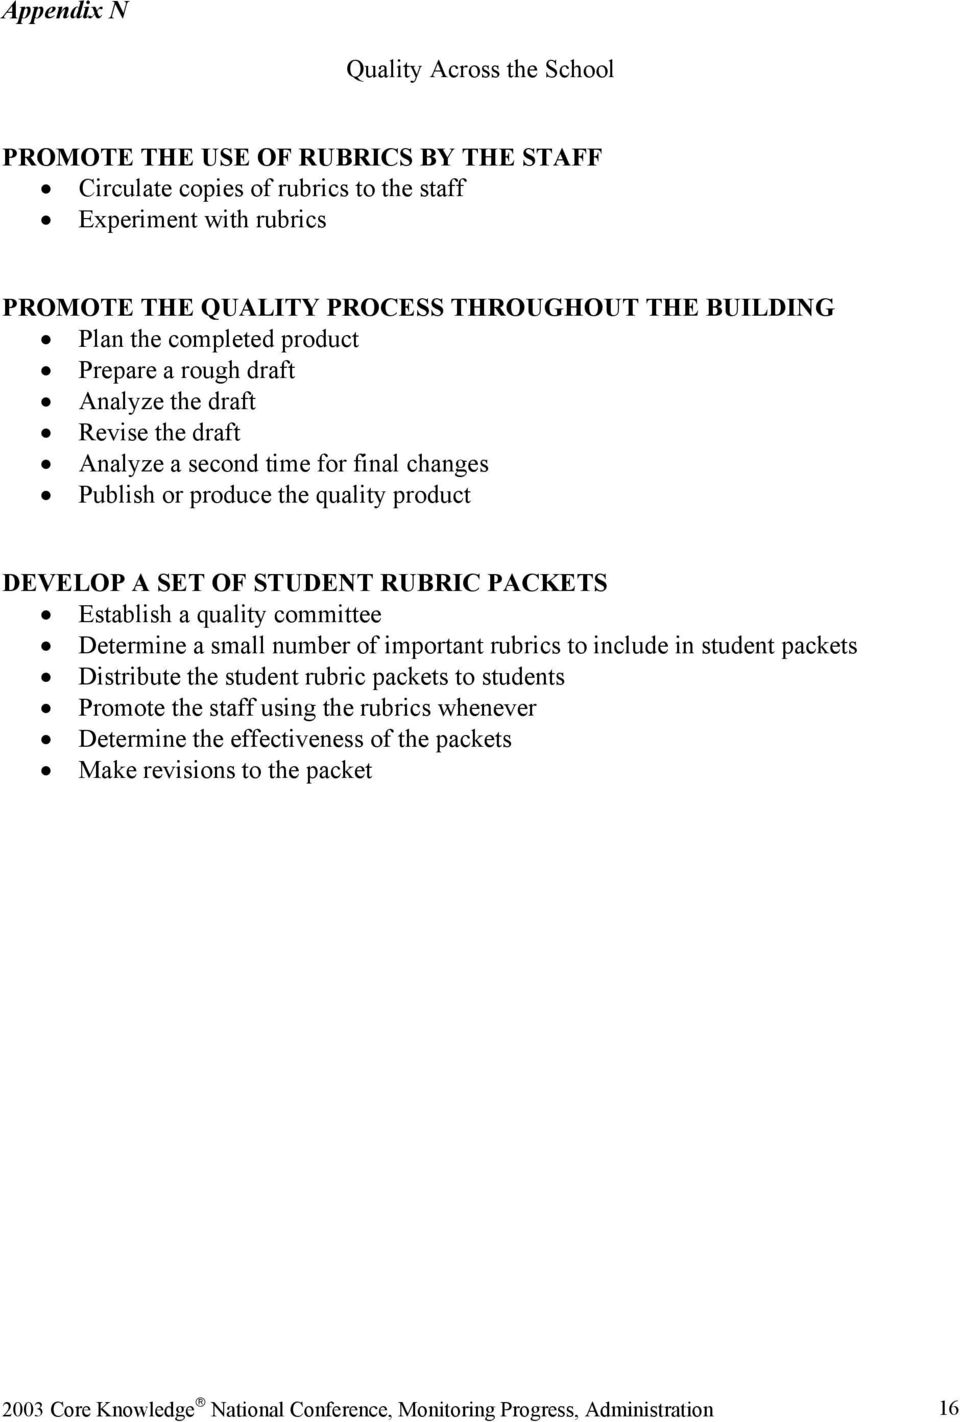 OF STUDENT RUBRIC PACKETS Establish a quality committee Determine a small number of important rubrics to include in student packets Distribute the student rubric packets to students